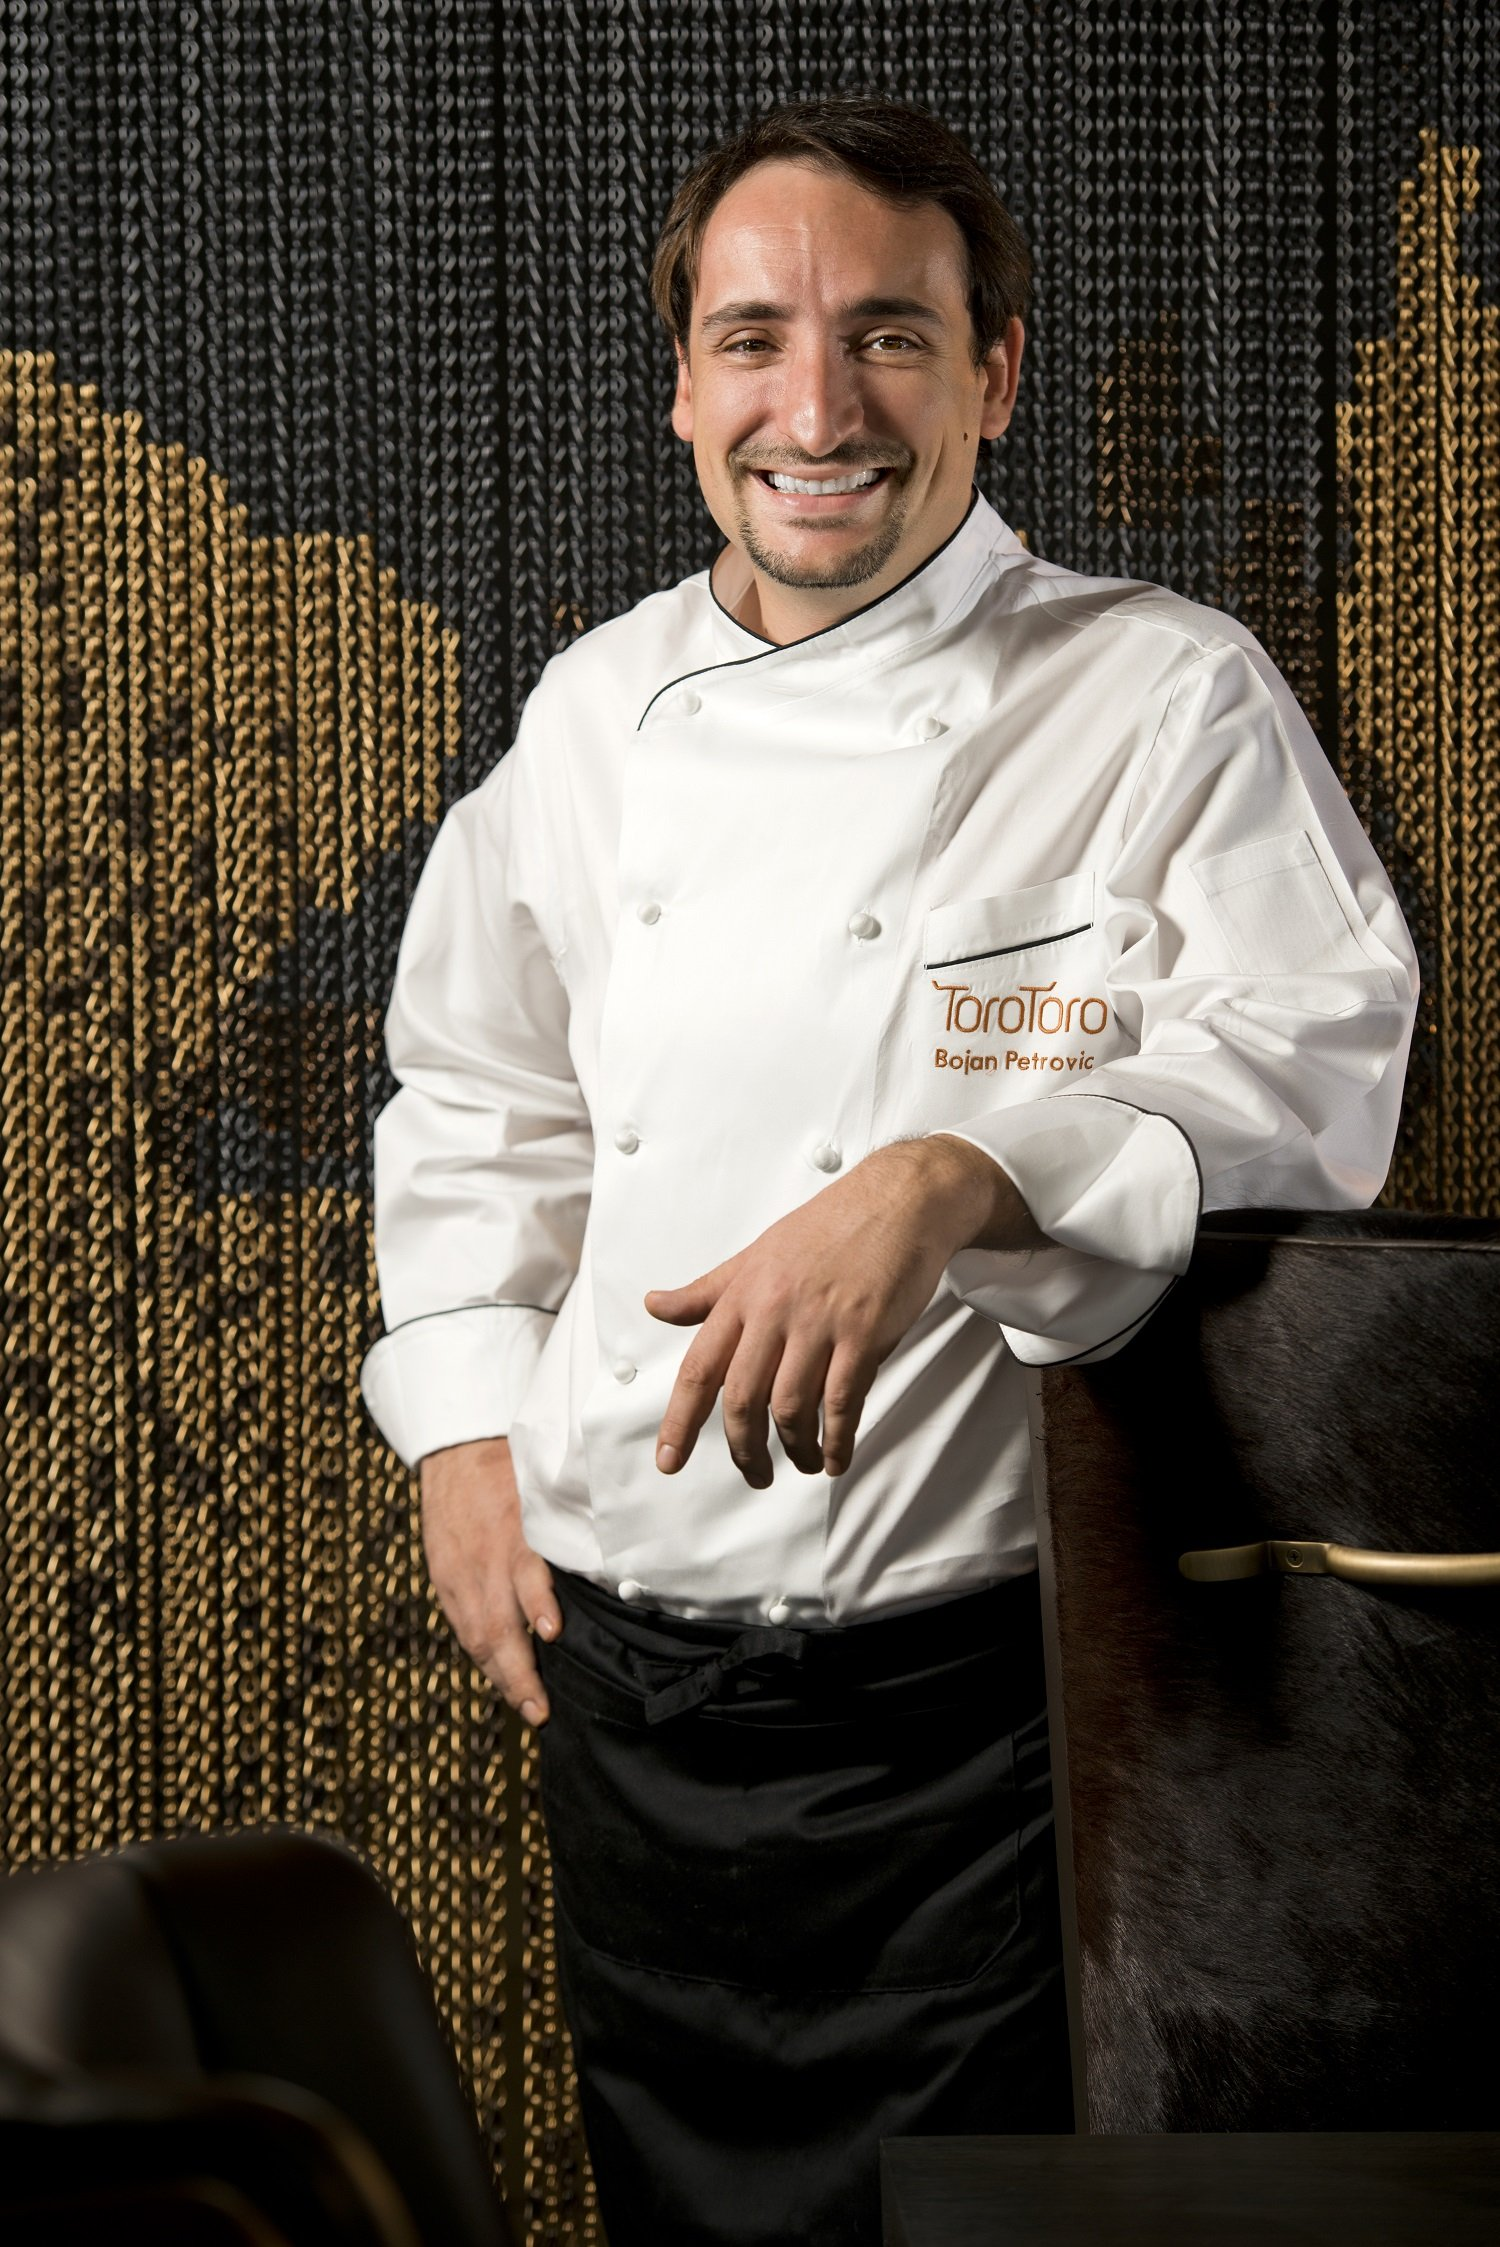 Bojan Petrovic, Executive Chef, Toro Toro